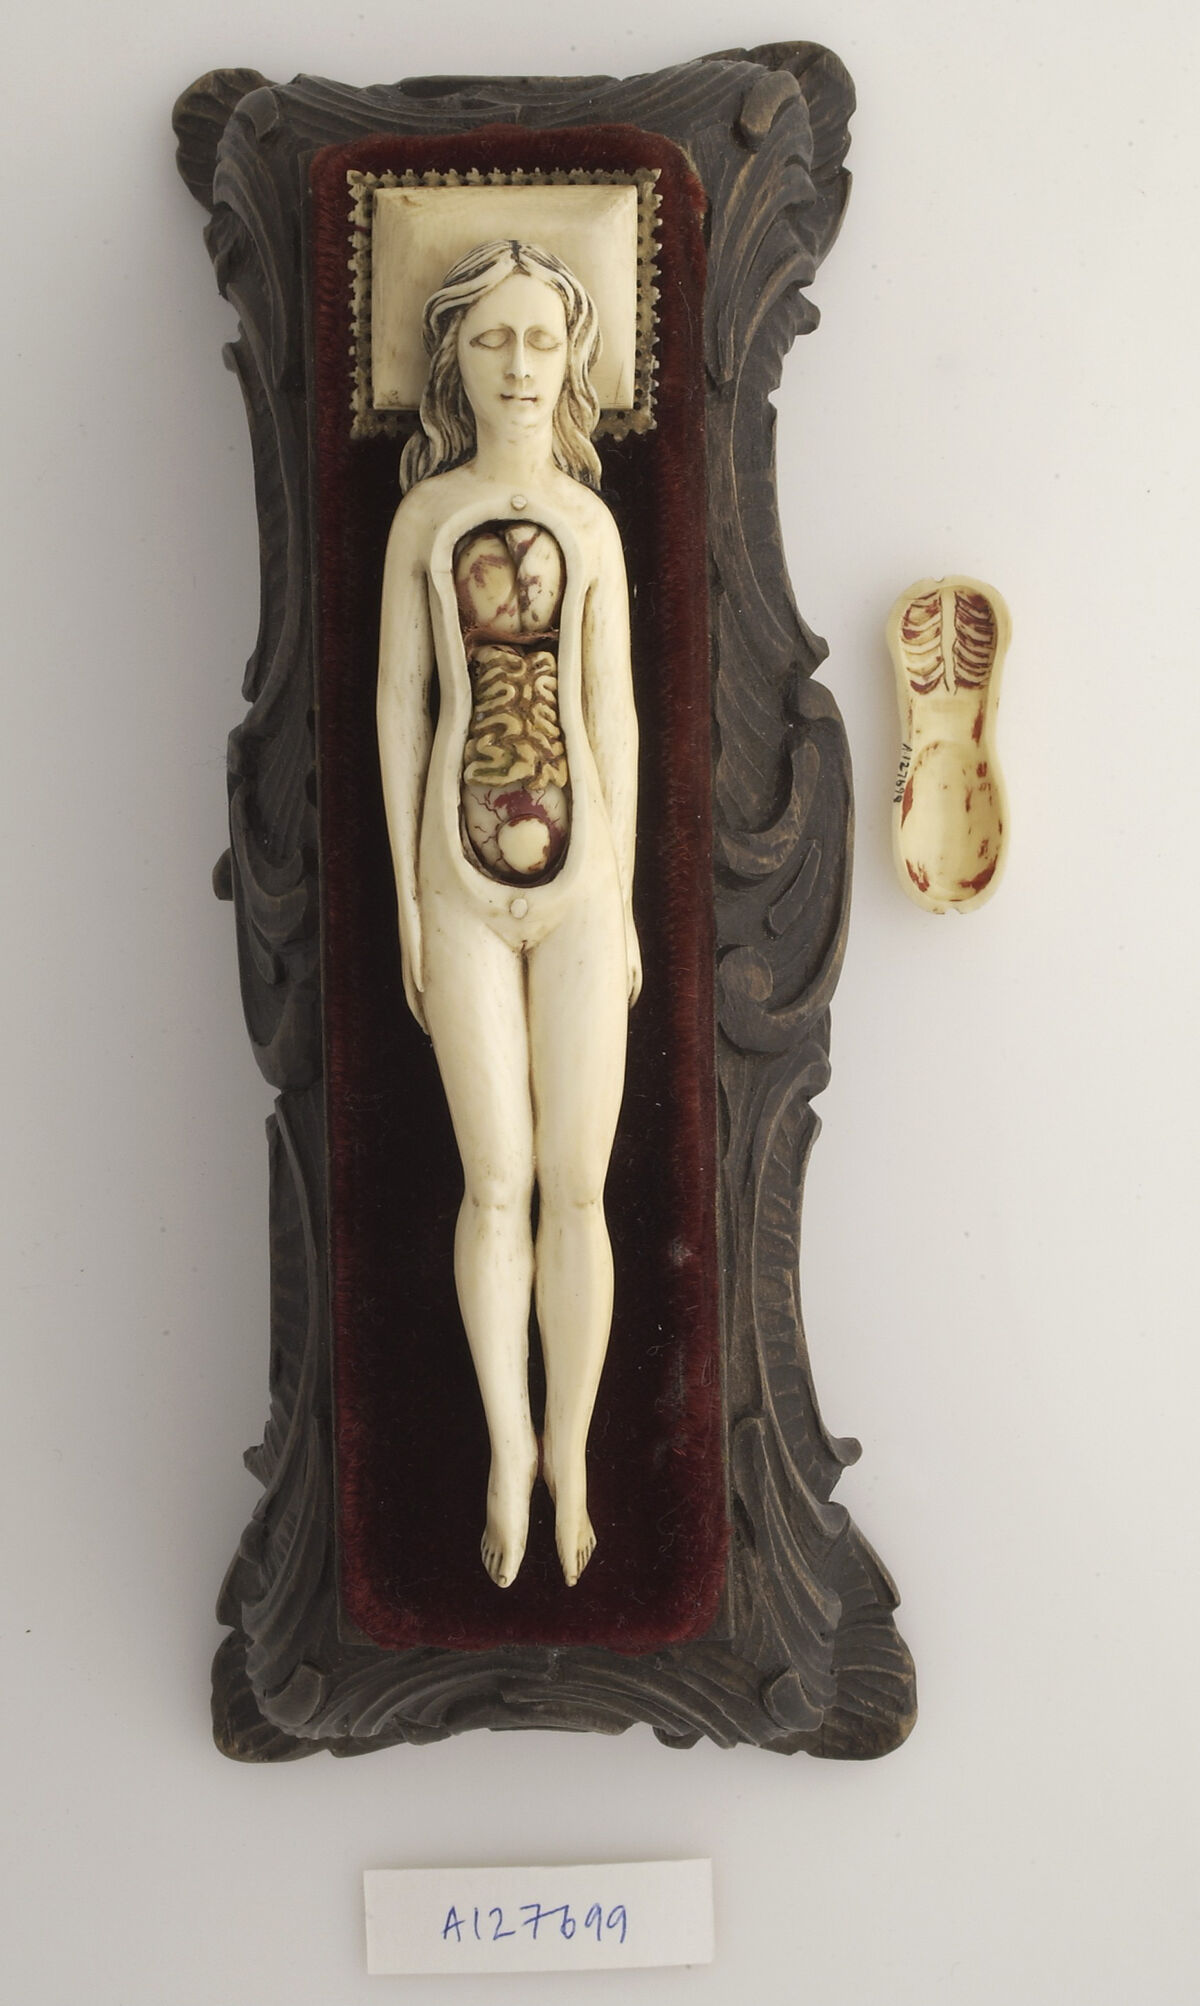 Ivory anatomical model of a pregnant female with removable parts possibly used by obstetric specialists or midwives to provide reassurance for pregnant women, 17th century. Courtesy of the Wellcome Library, London.